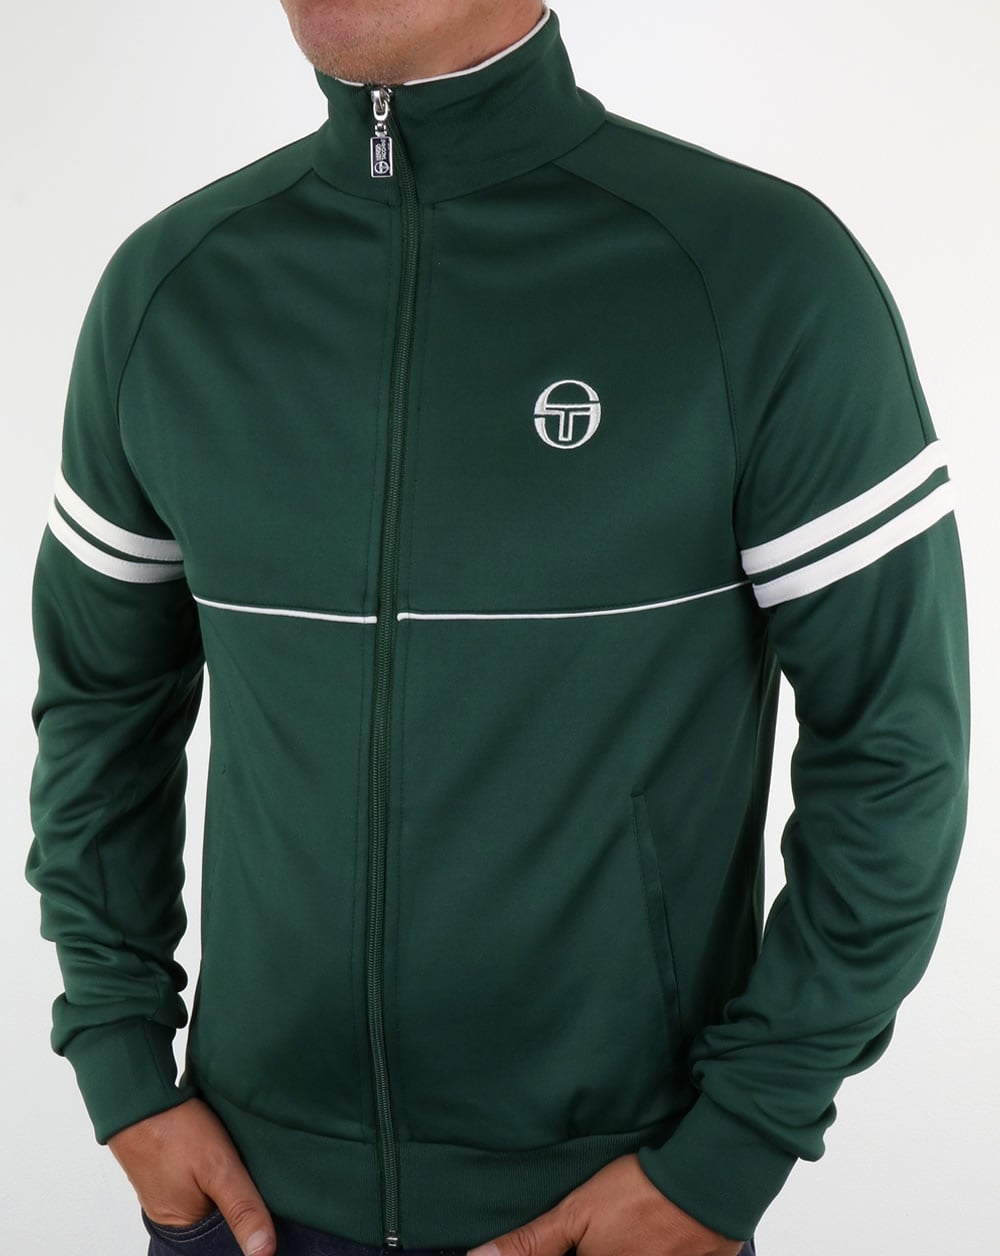 0a54efd9 Sergio Tacchini Star Track Top Forest Green,tracksuit,jacket,mens